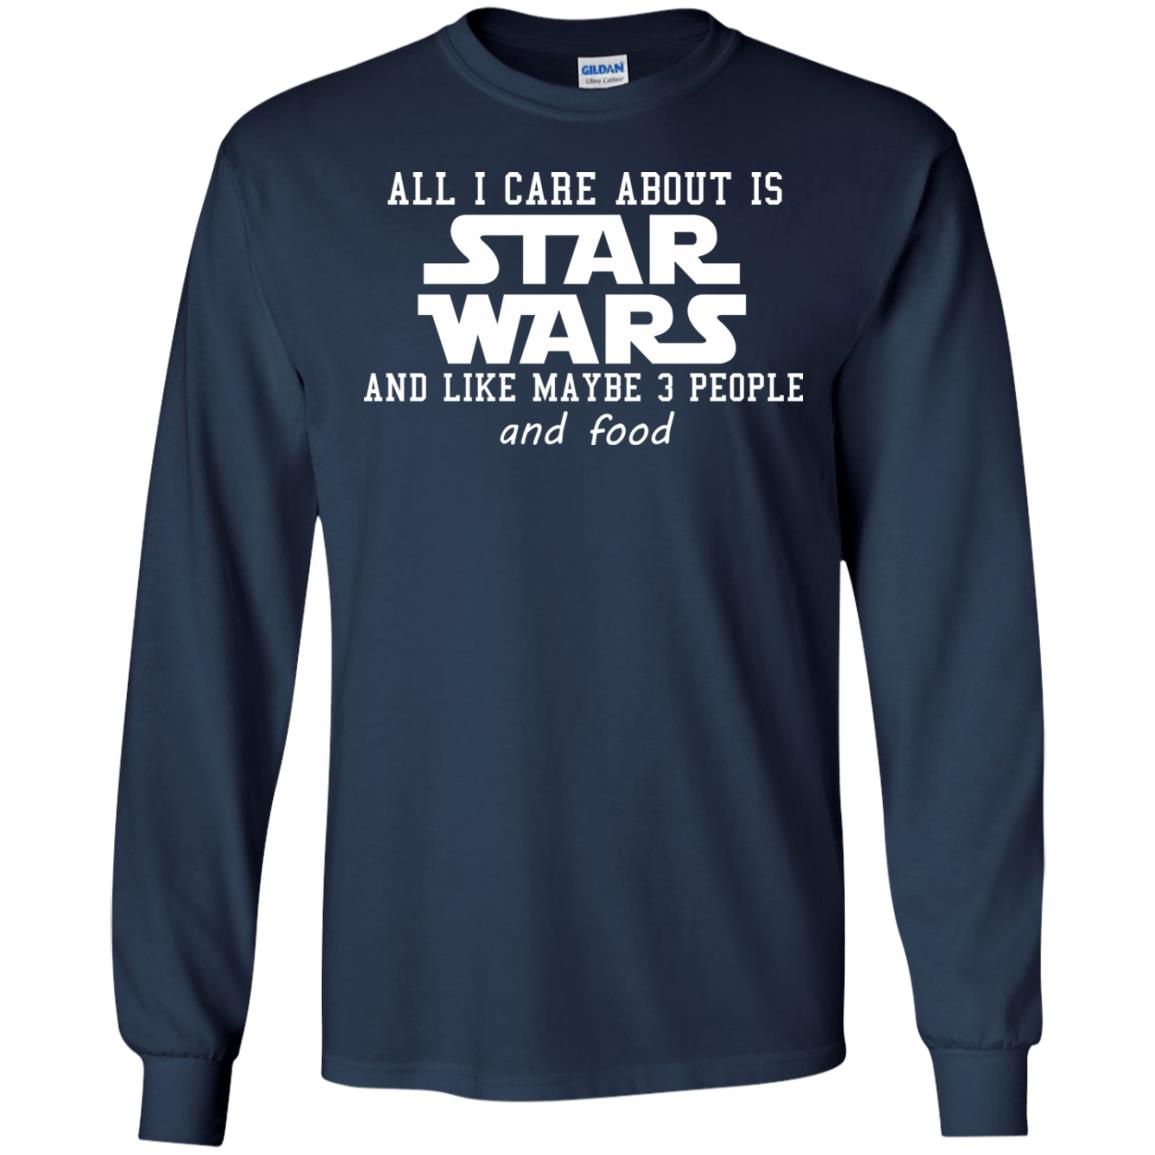 image 604 - All I care about is Star Wars & like maybe 3 people & food